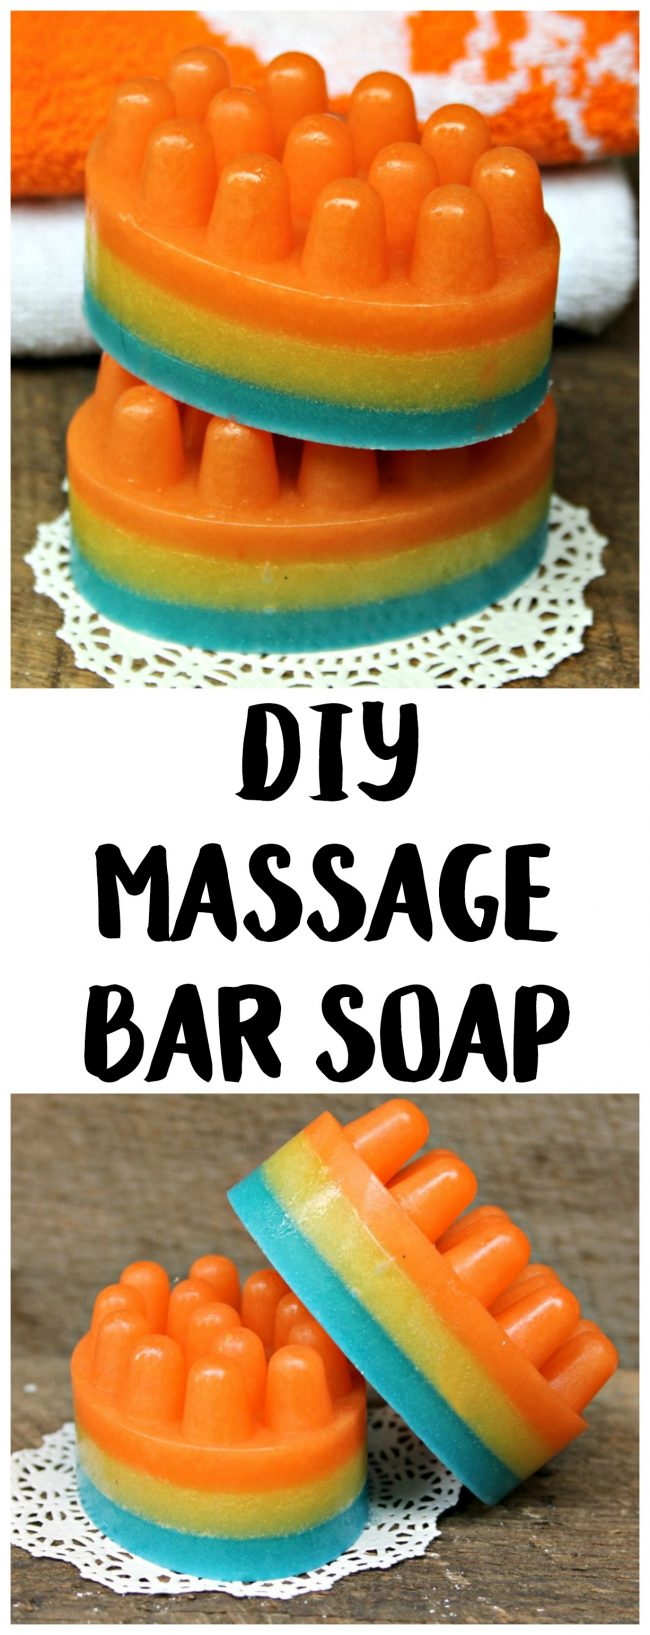 You can make your own massage bars with this easy DIY soap recipe! All you need are a few supplies like essential oils and glycerin, the perfect cute mold, and these melt and pour directions and you can have pretty massage bars for your next bath. This craft is great for beginners and makes a great holiday gift too!